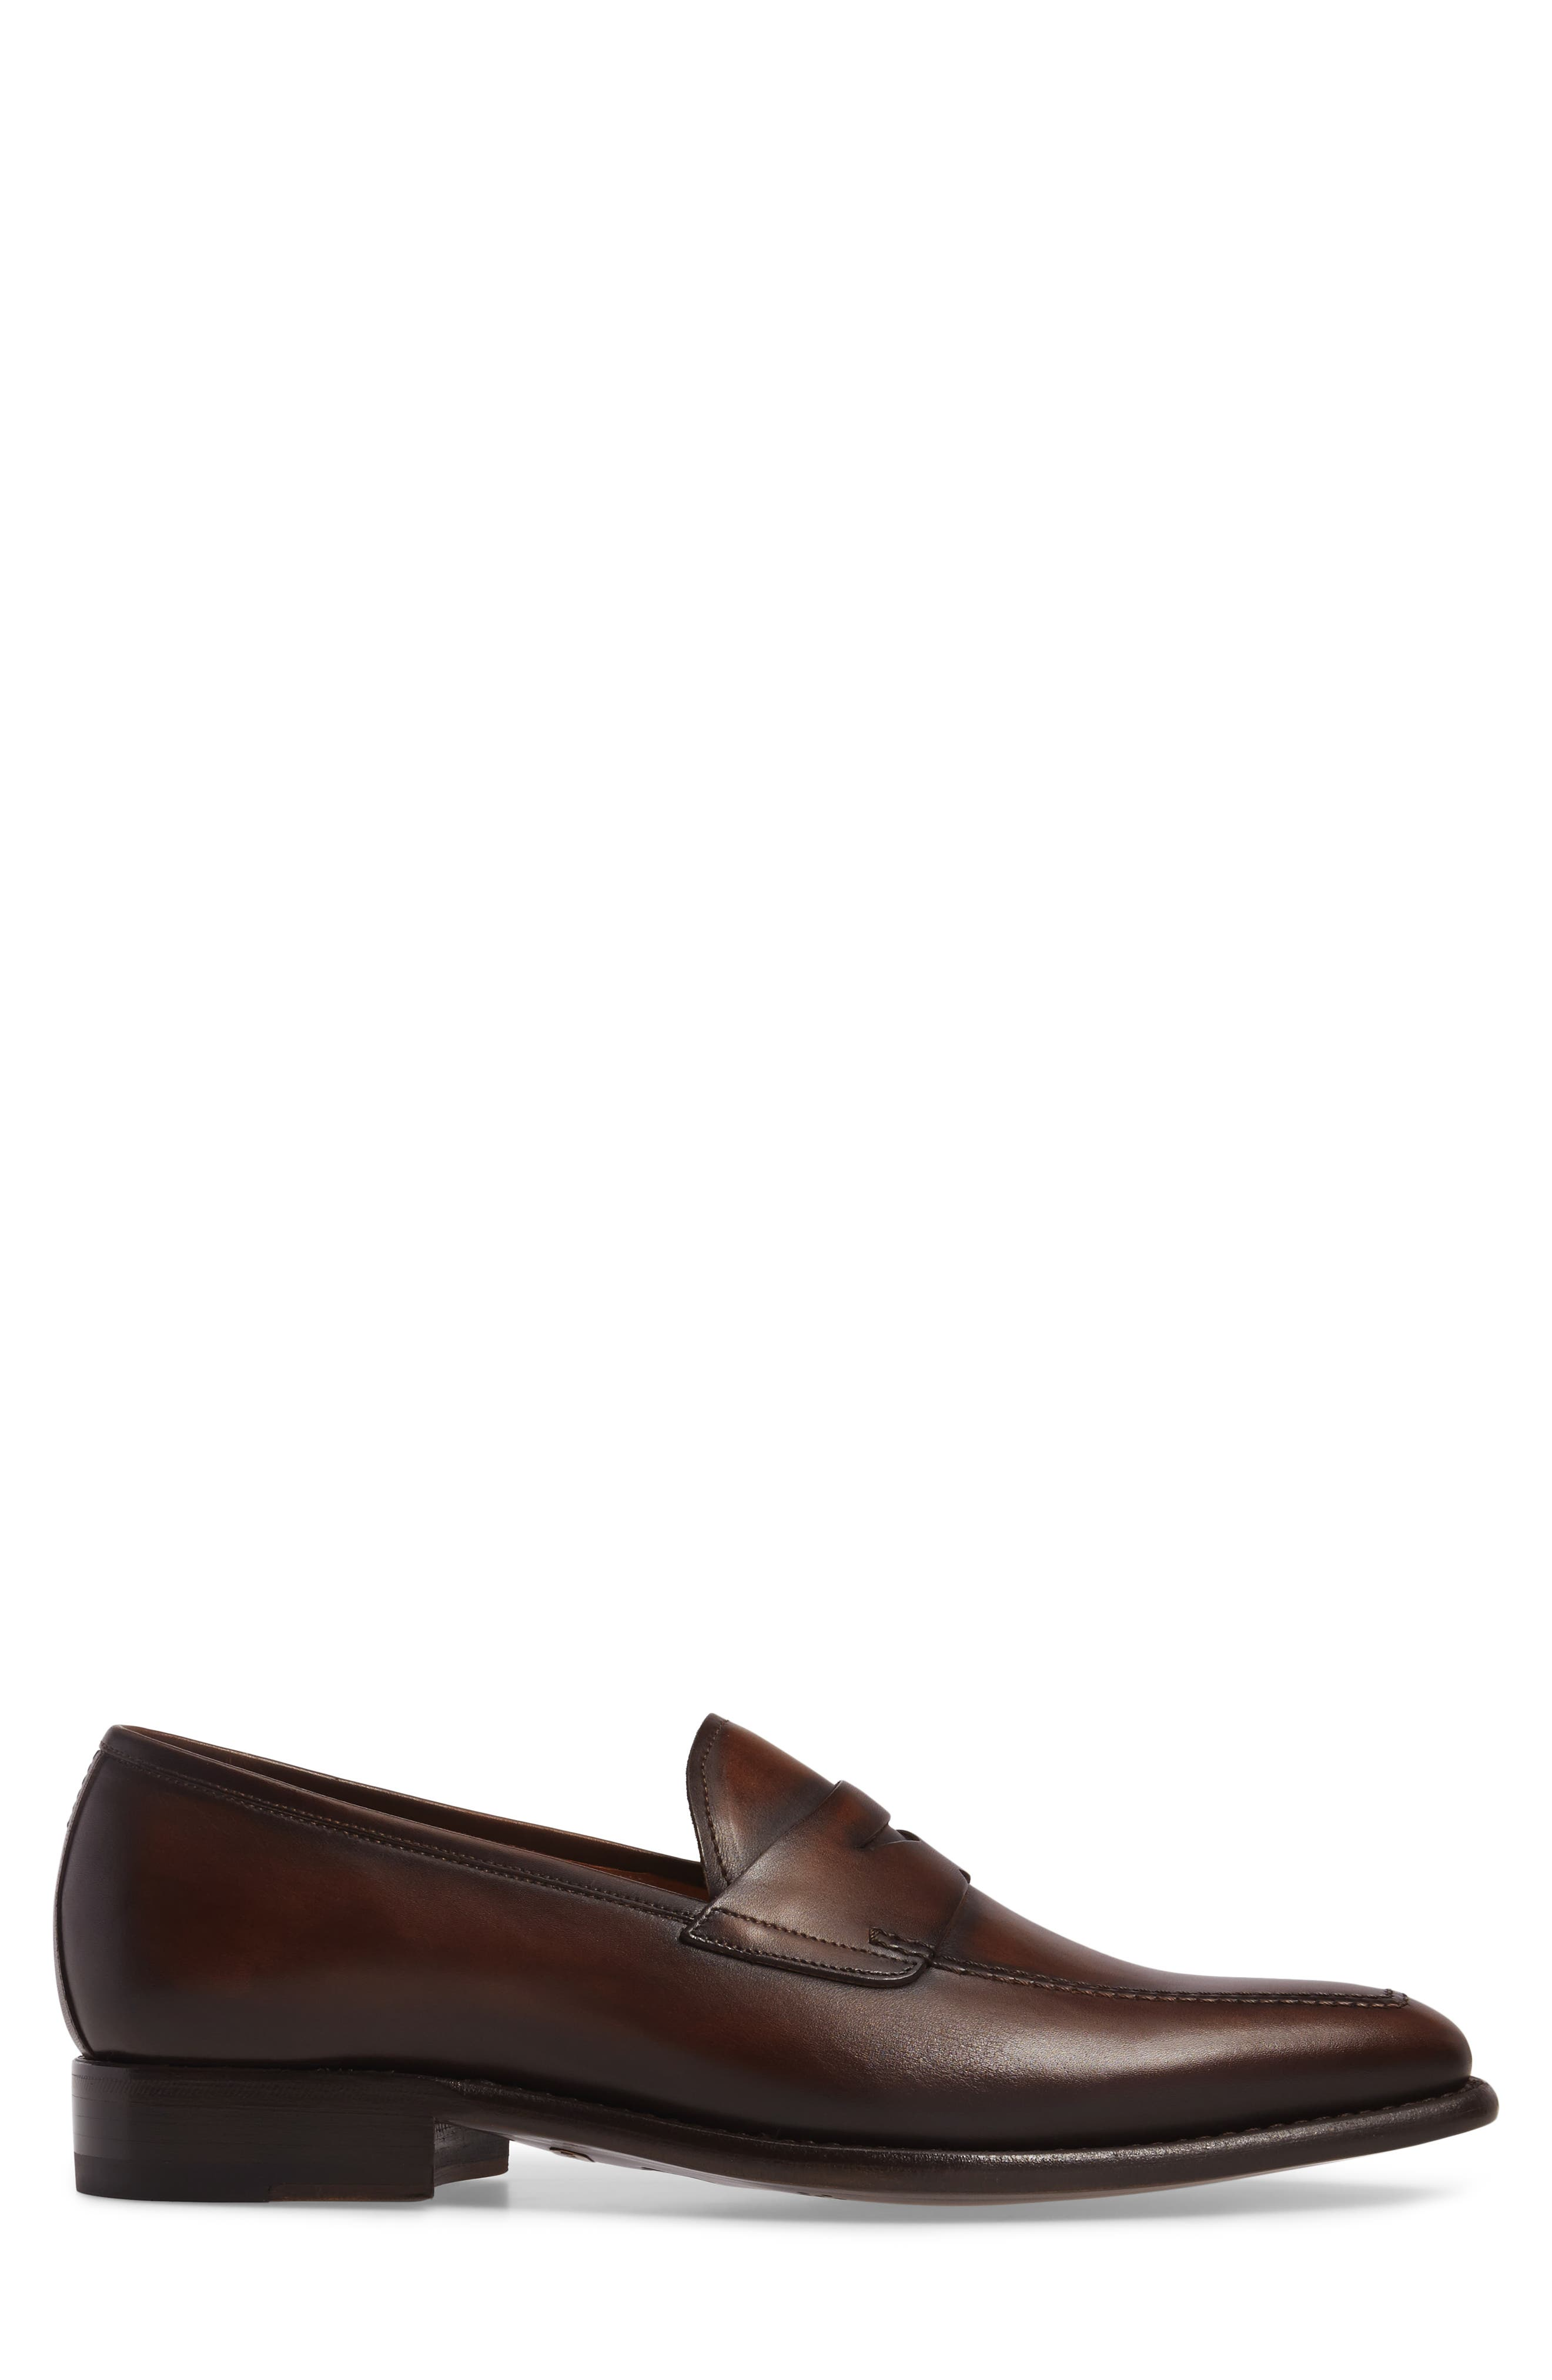 Claude Penny Loafer,                             Alternate thumbnail 3, color,                             BROWN LEATHER